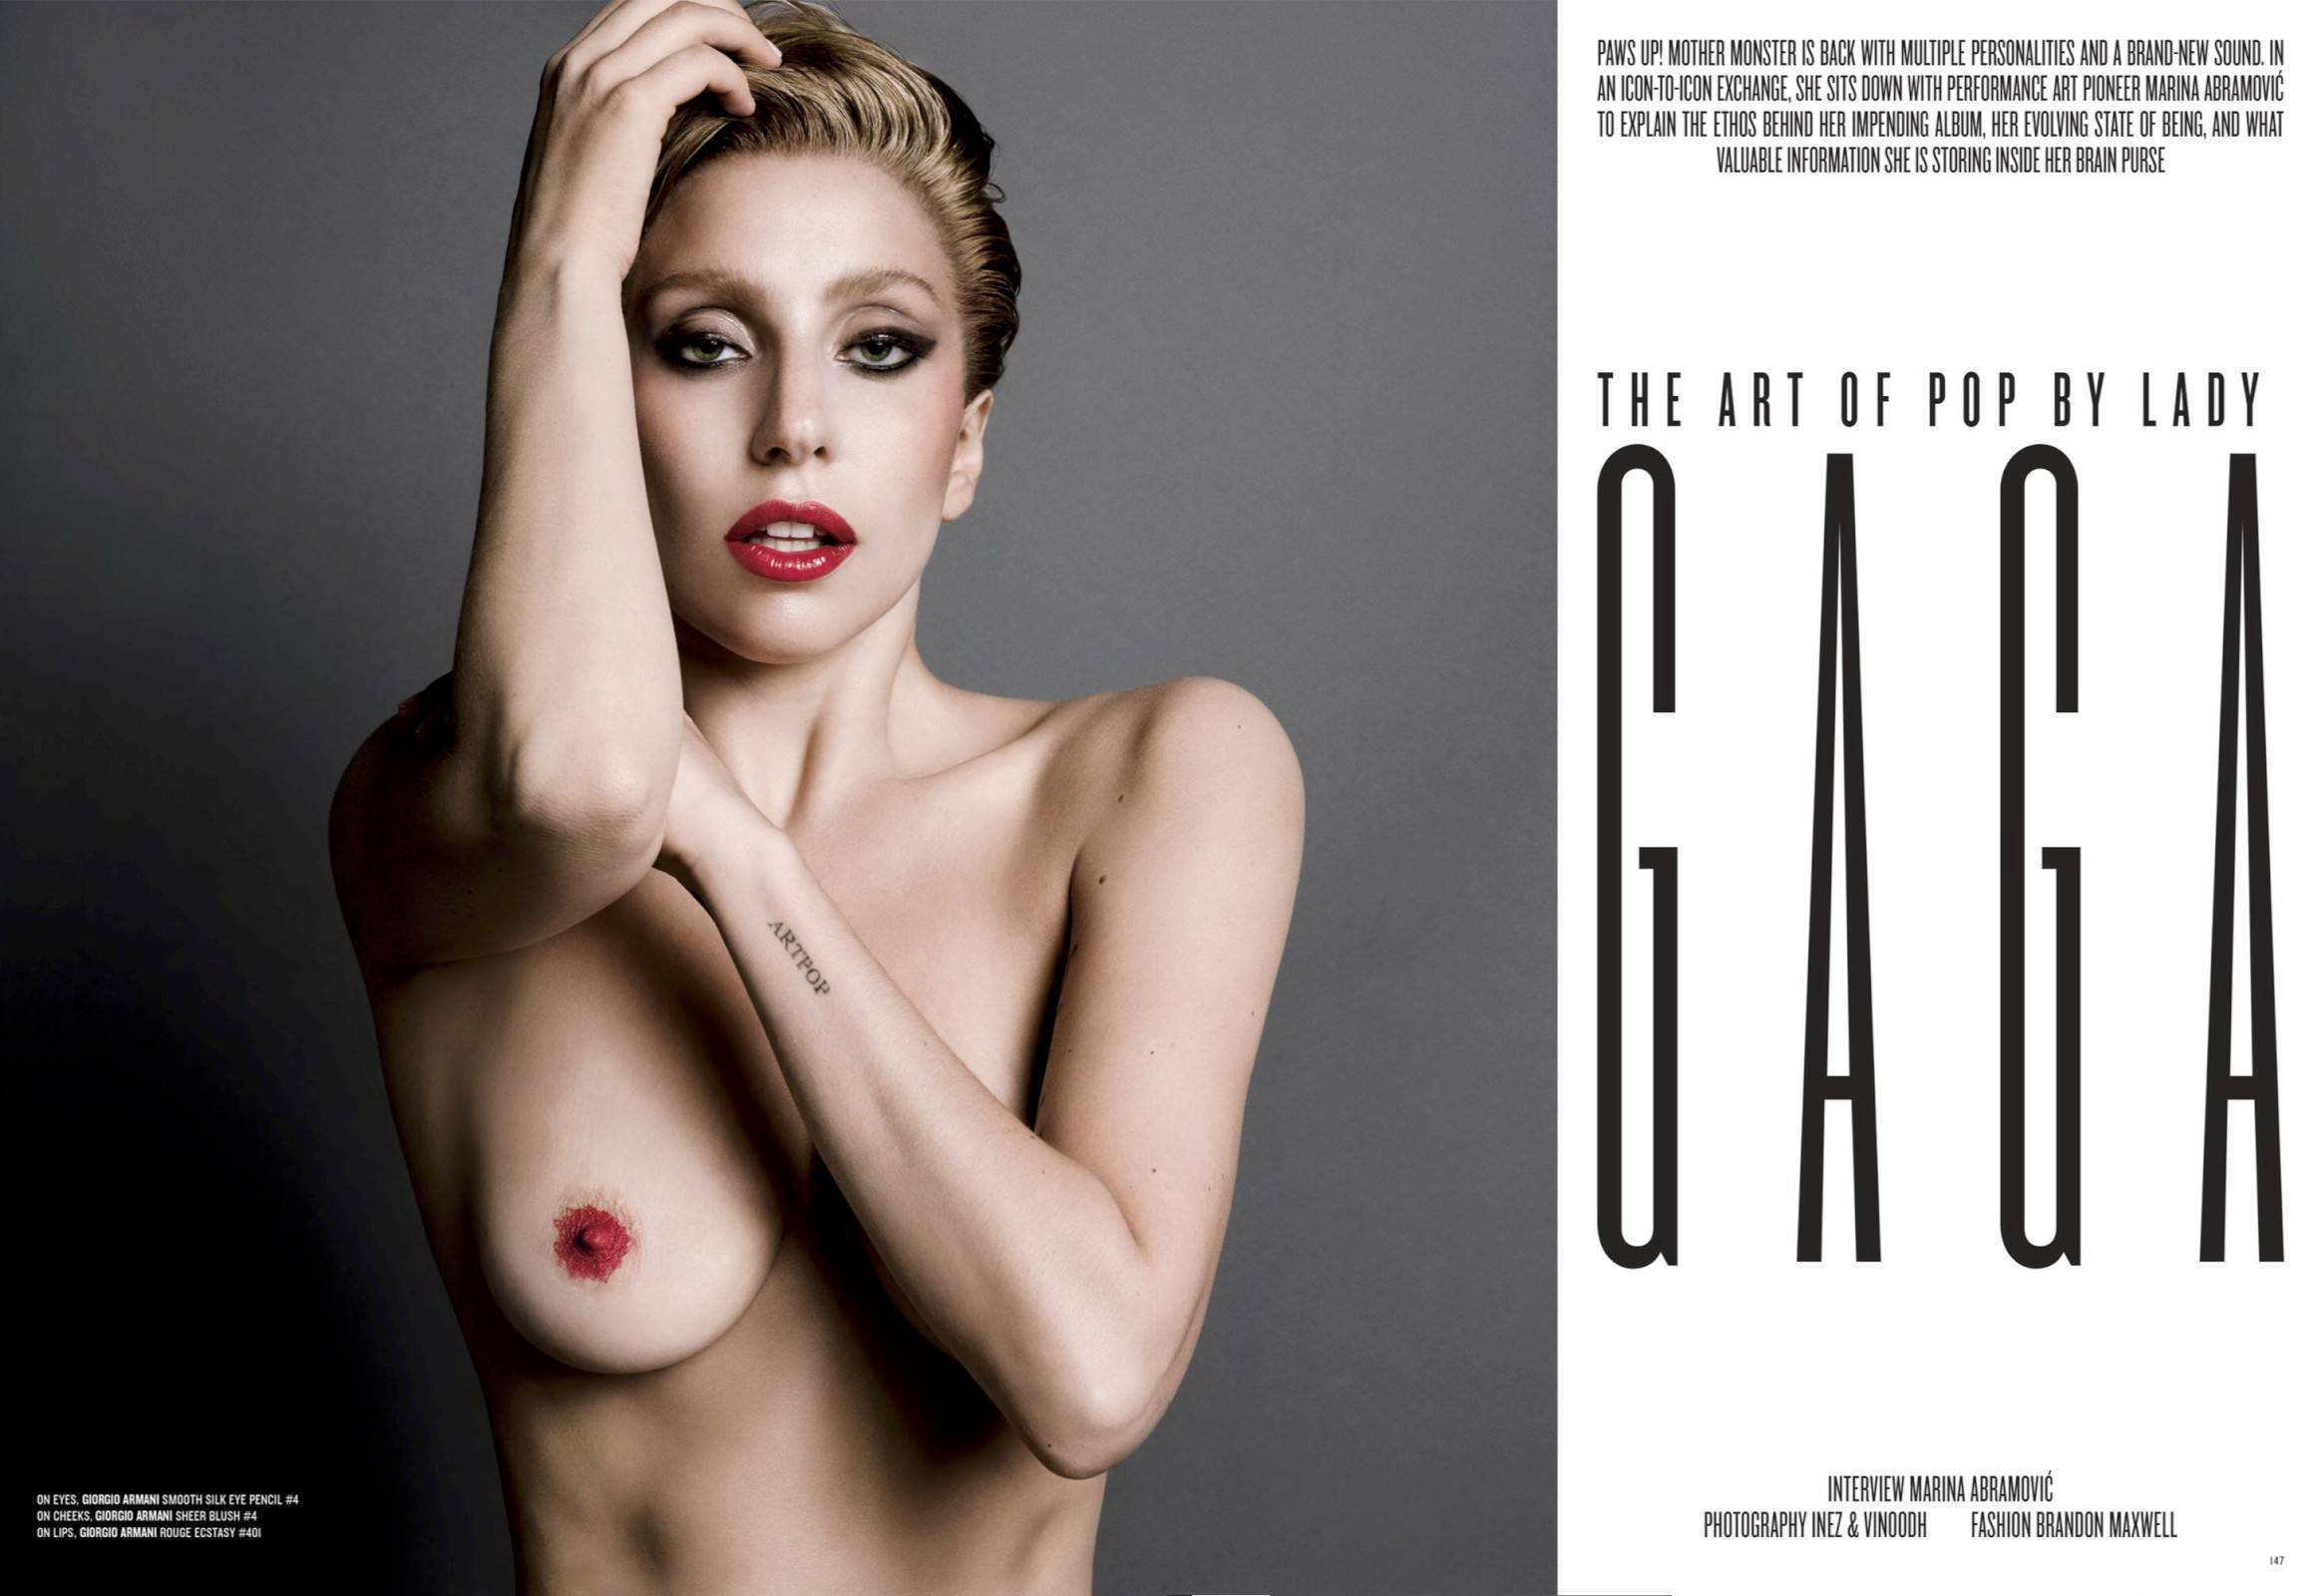 Lady gaga nude leaked pics porn and sex scenes